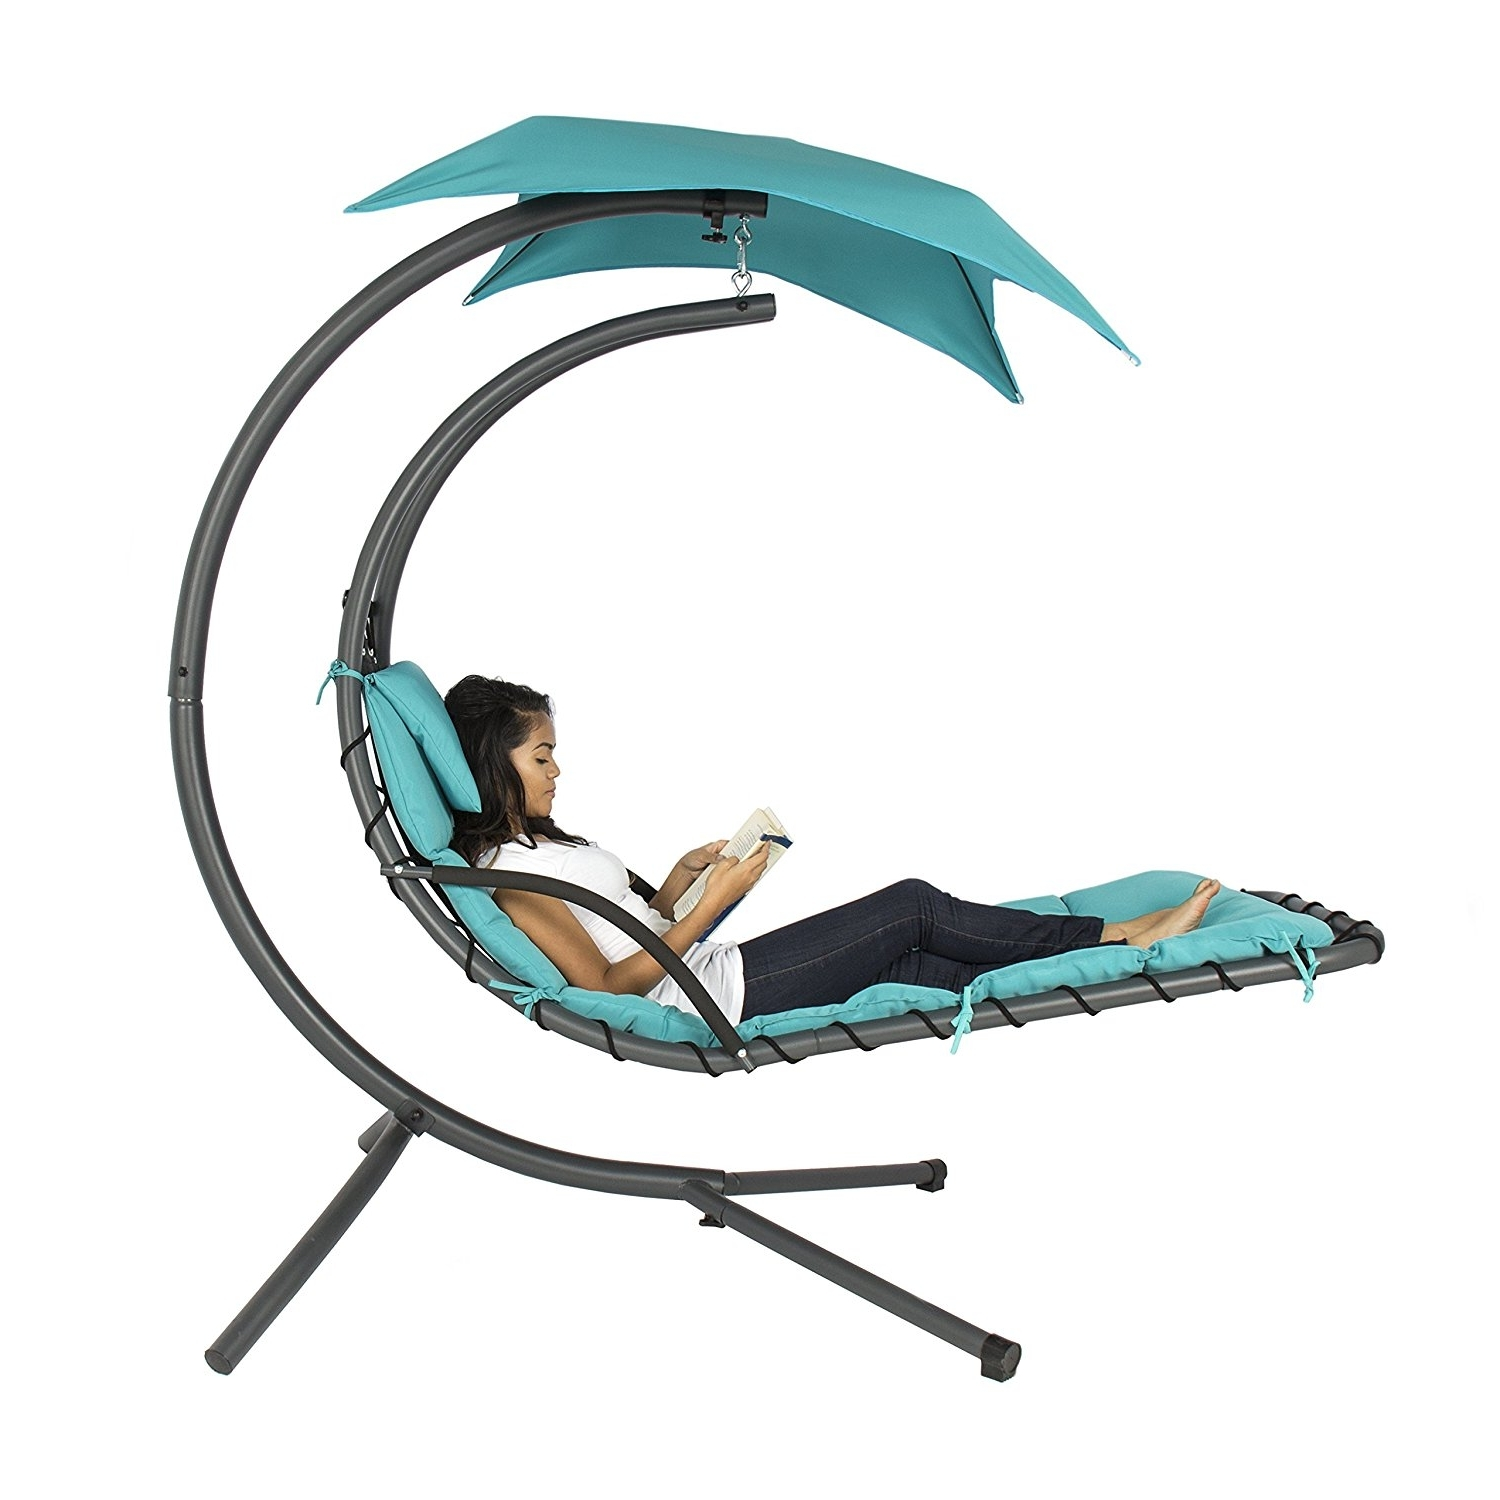 Most Popular Chaise Lounge Swing Chairs For Amazon: Best Choice Products Hanging Chaise Lounger Chair Arc (View 9 of 15)